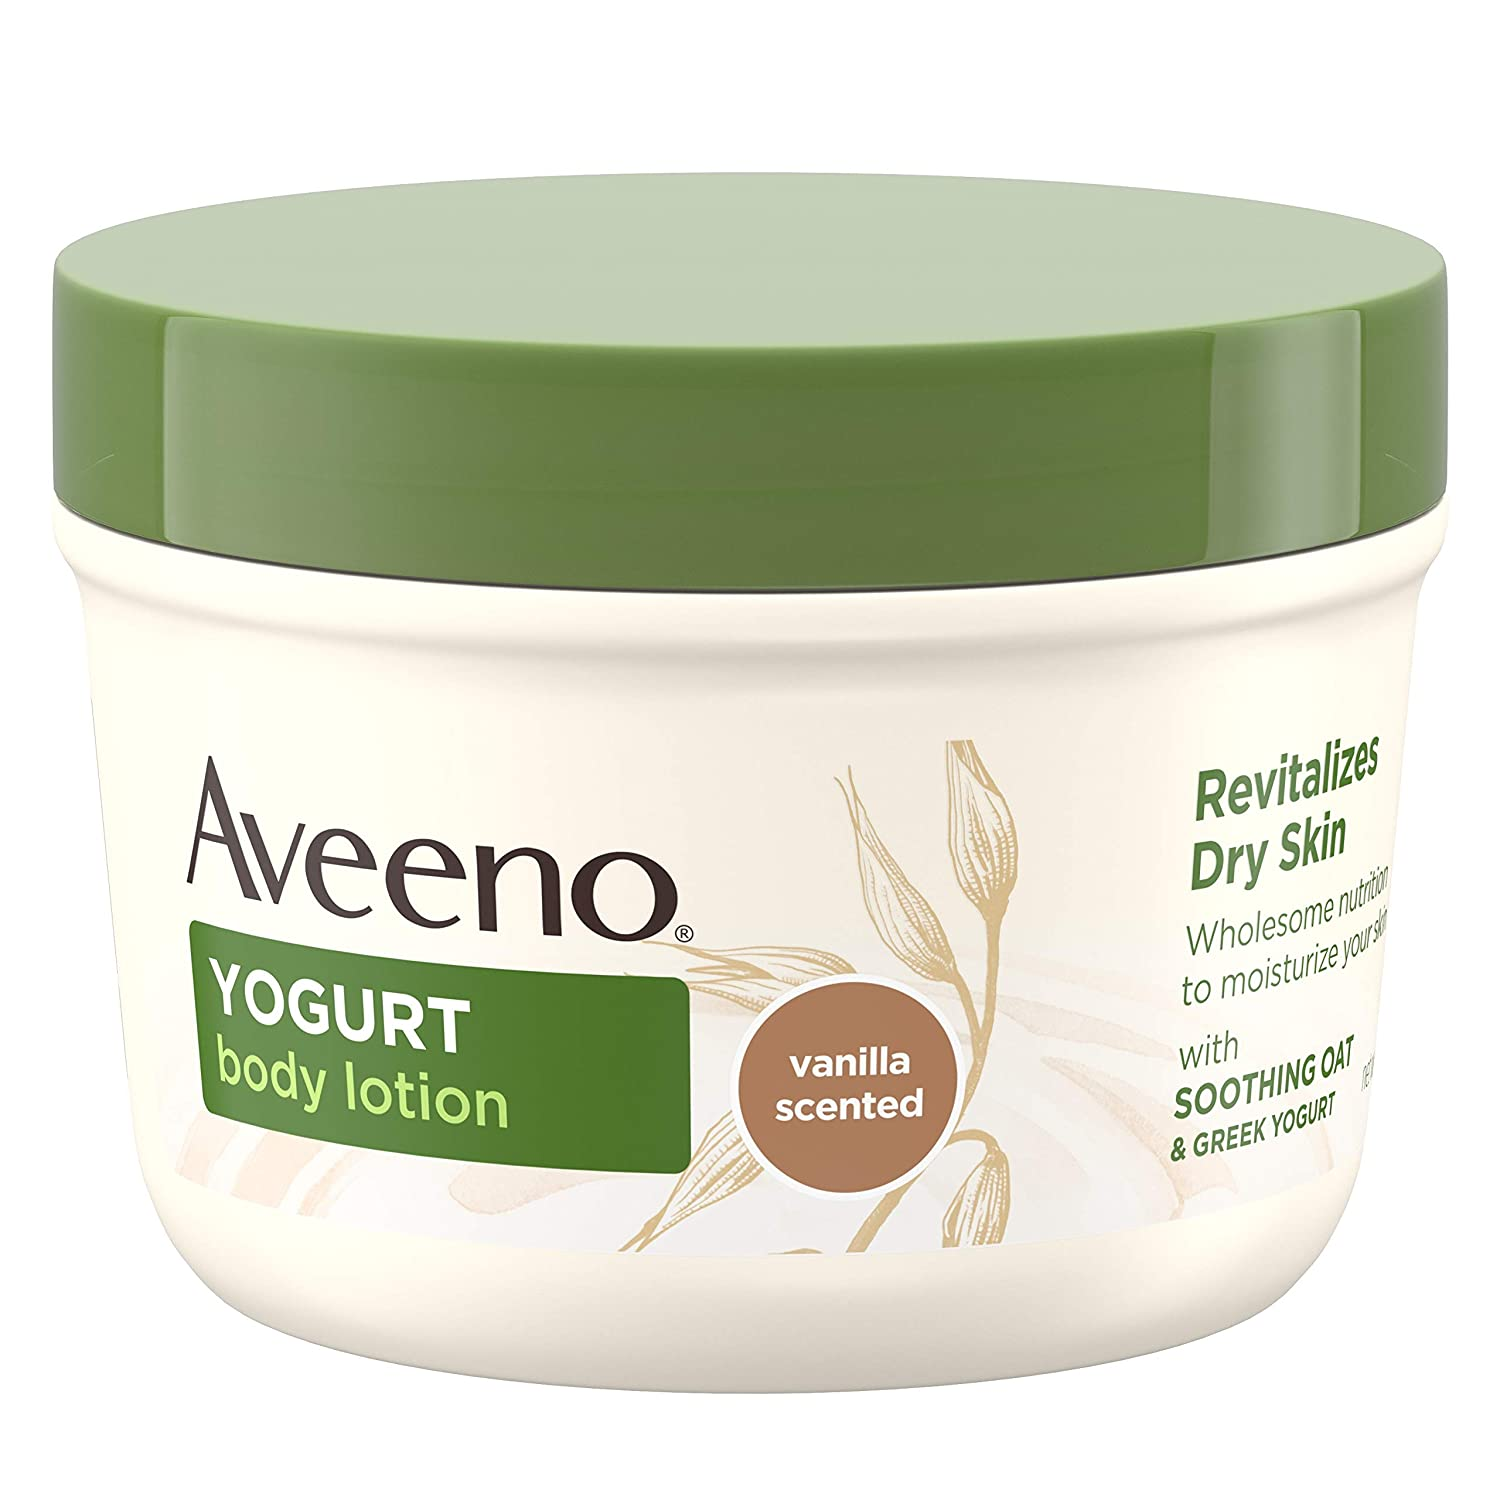 Aveeno Daily Moisturizing Yogurt Body Lotion for Dry Skin with Vanilla Scent & Soothing Oat, 7 oz, Pack of 3